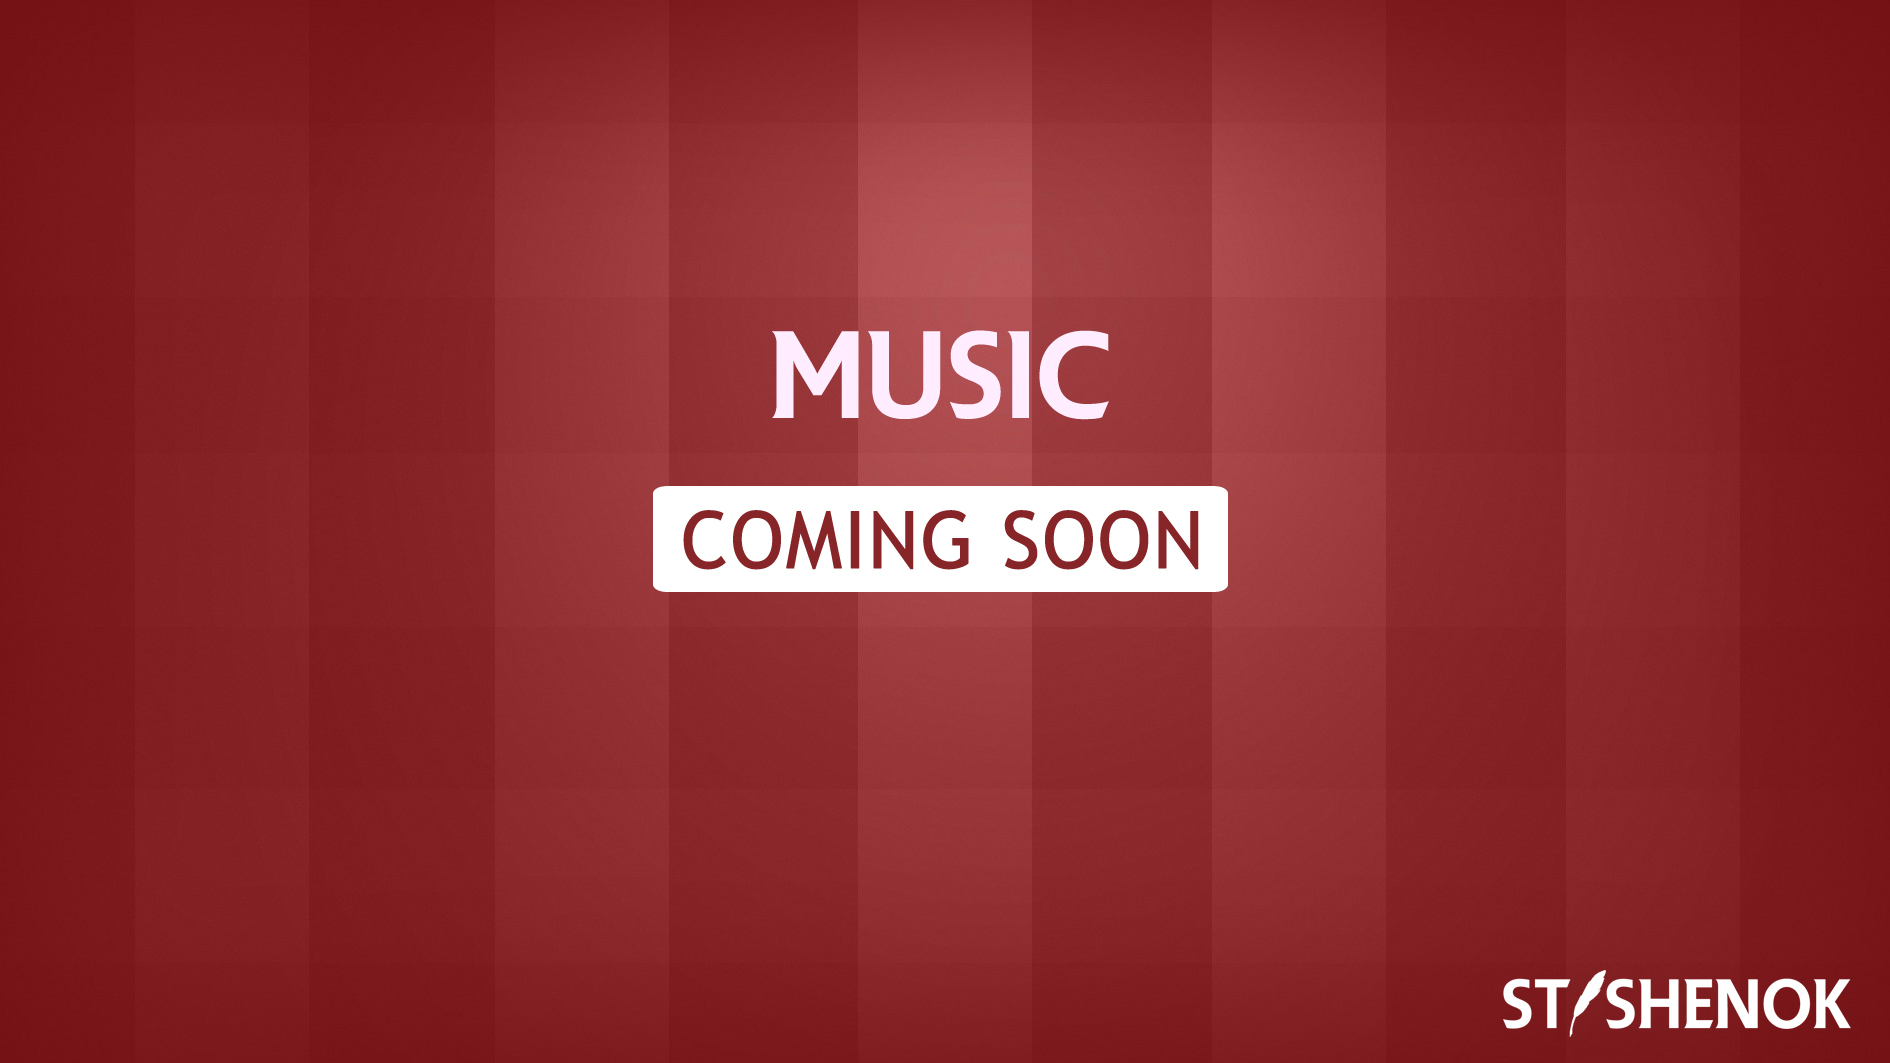 Stishenok Music Coming Soon